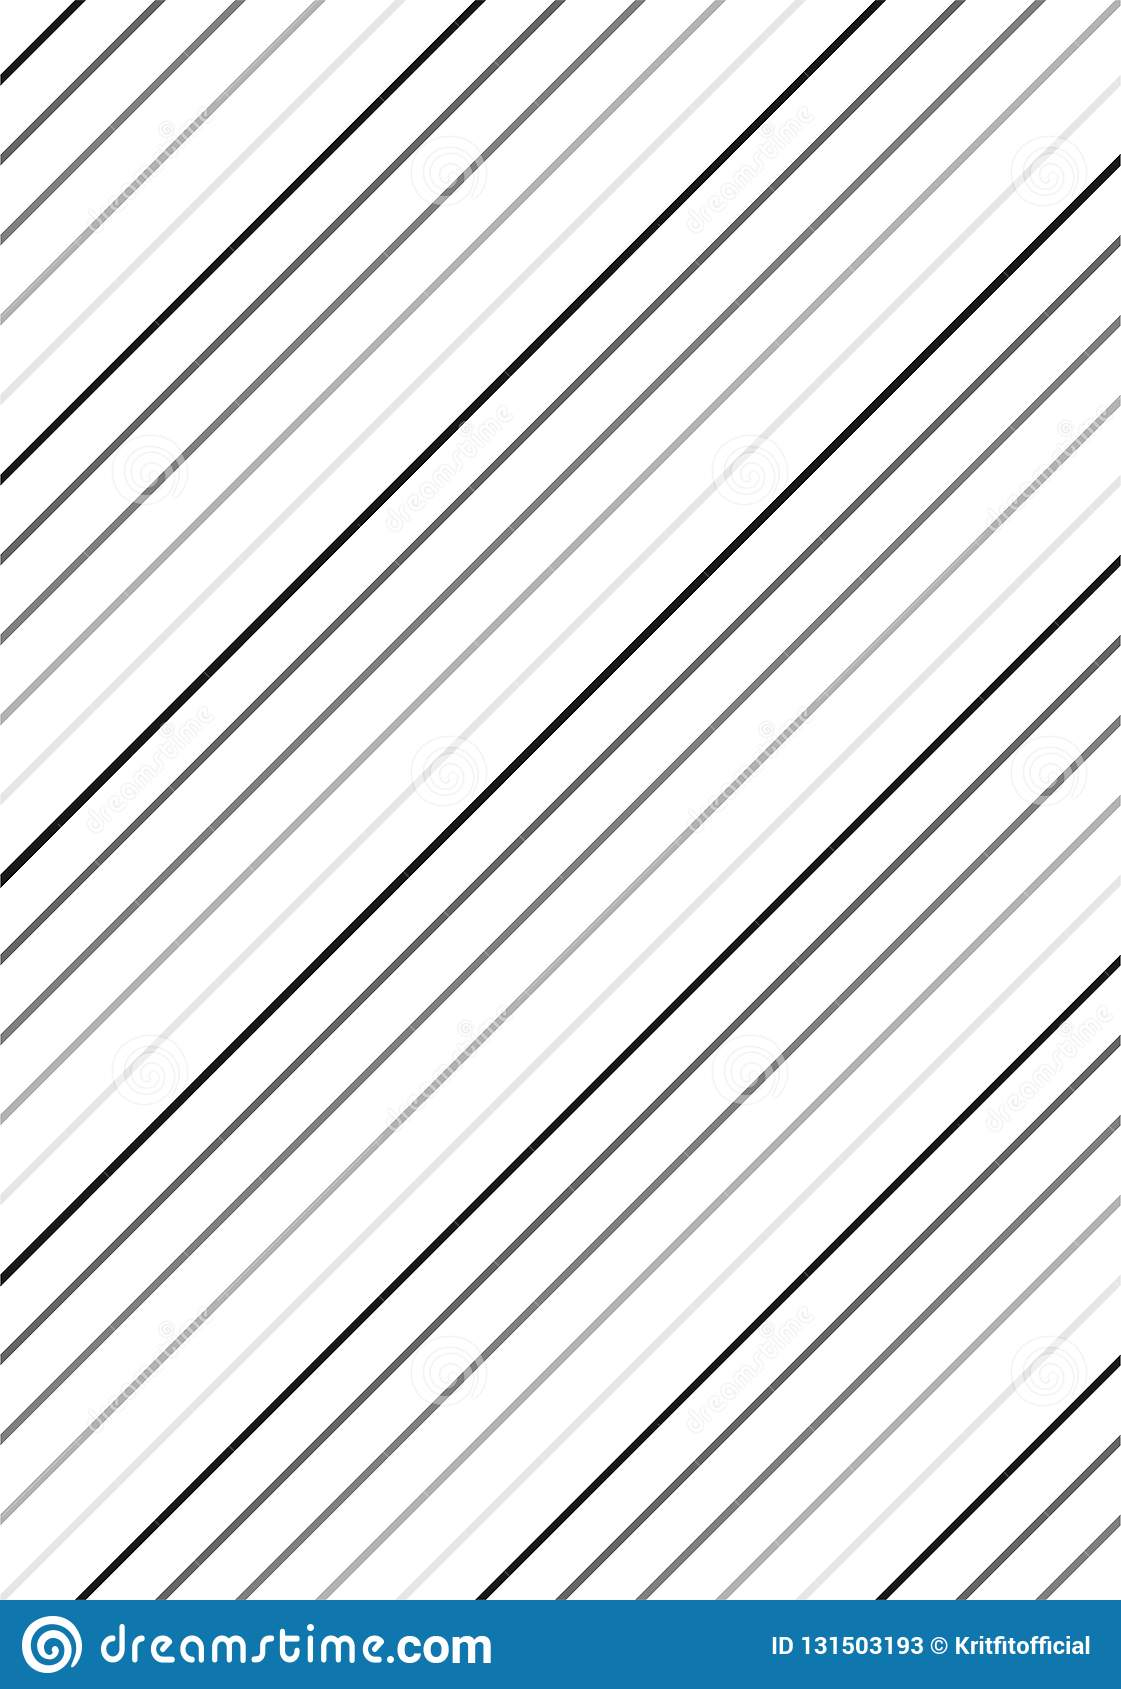 Black & White Stripes pattern